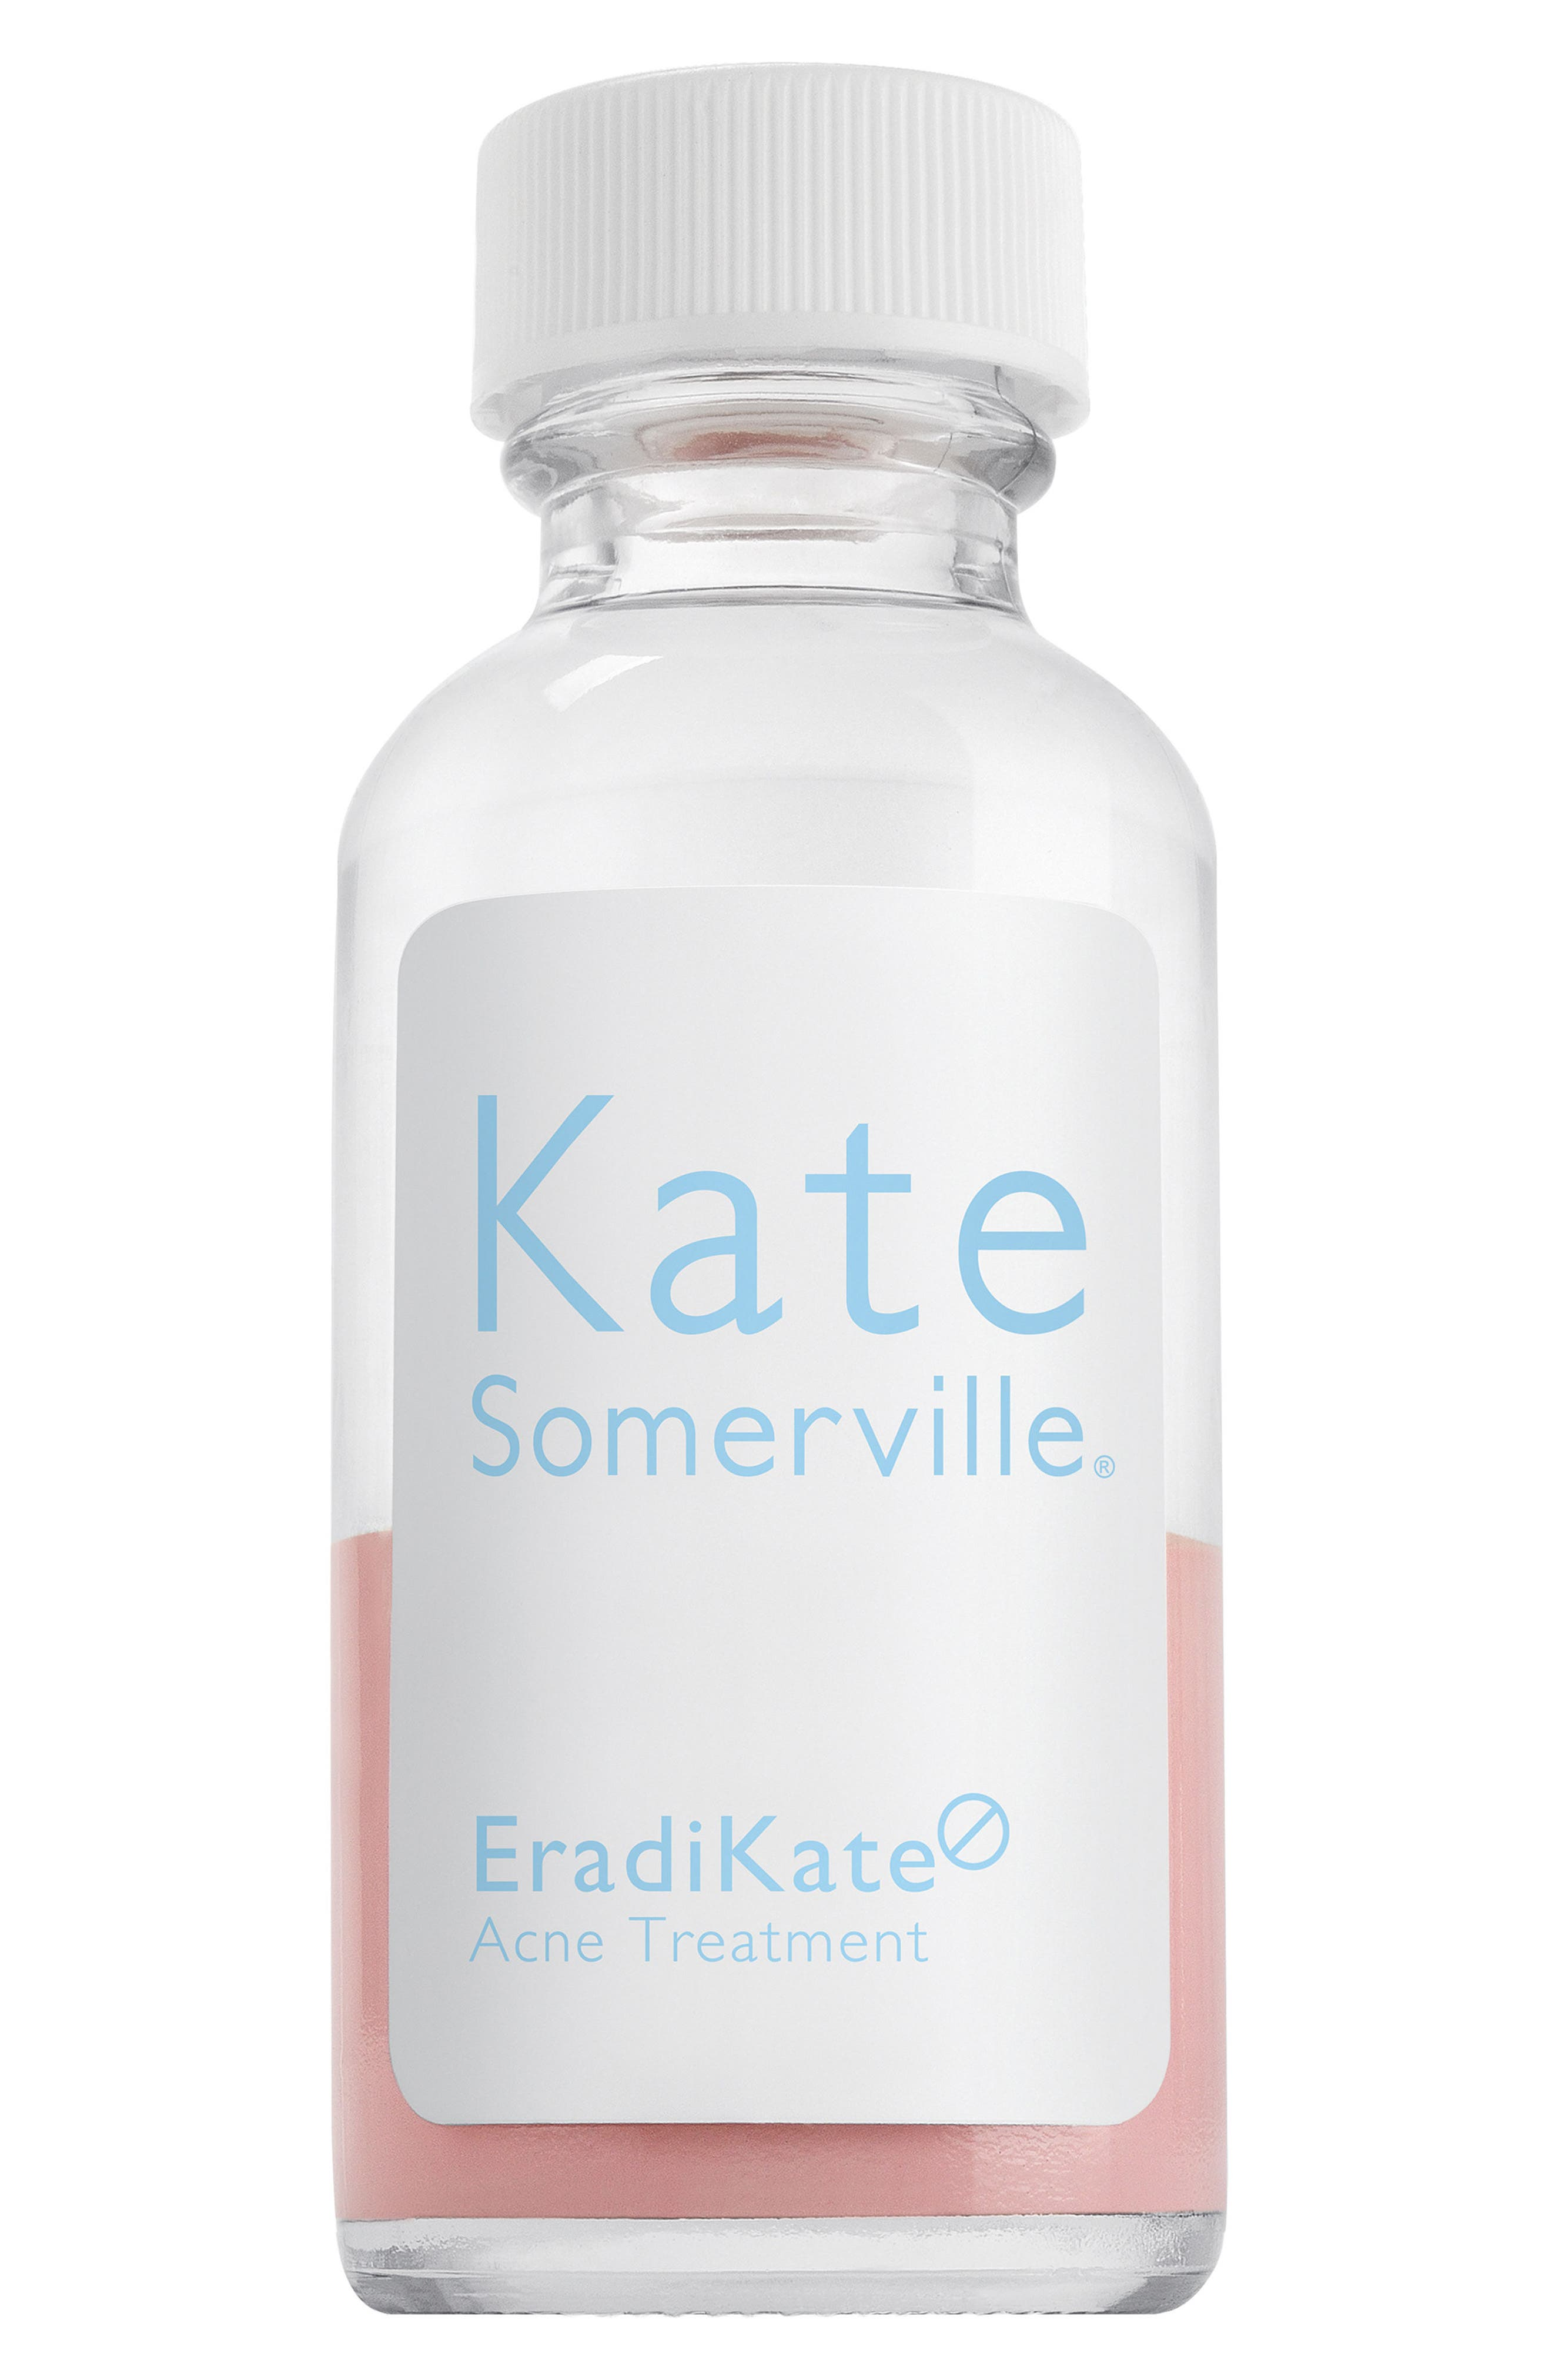 Alternate Image 1 Selected - Kate Somerville® 'EradiKate' Acne Treatment